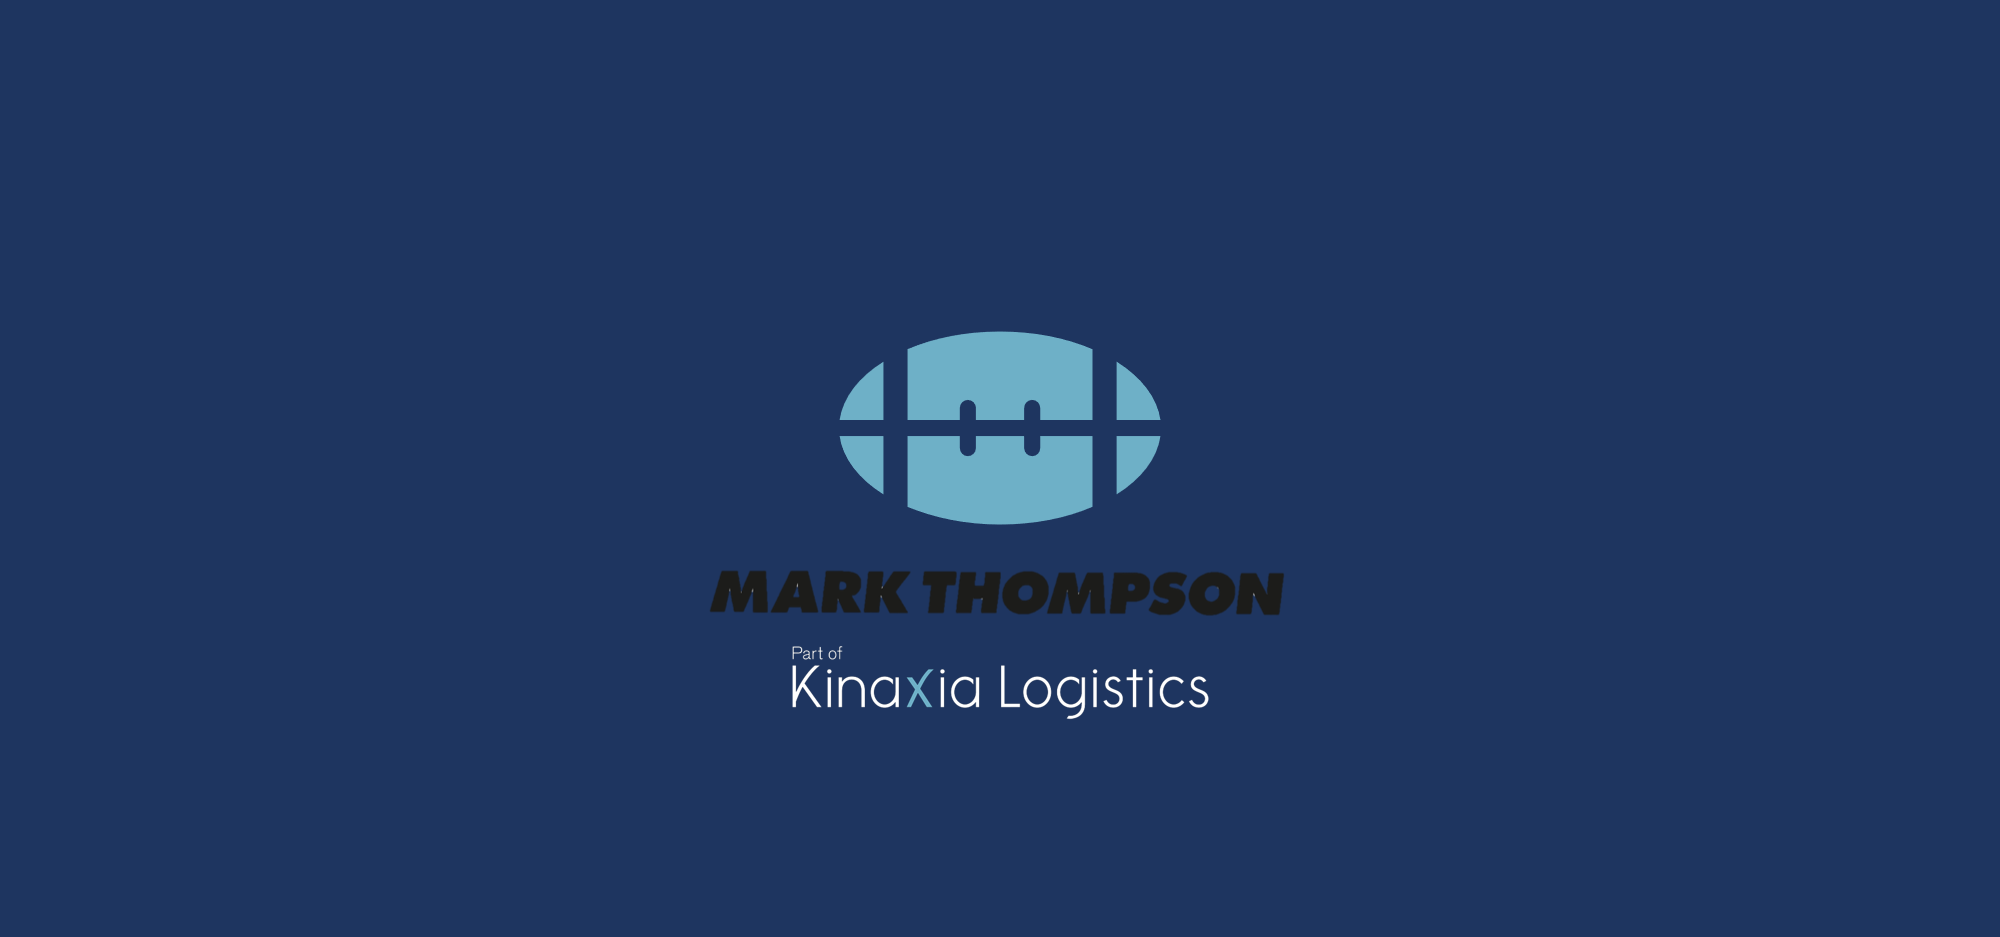 Mark Thompson Transport Sponsor St Helens Rugby League team